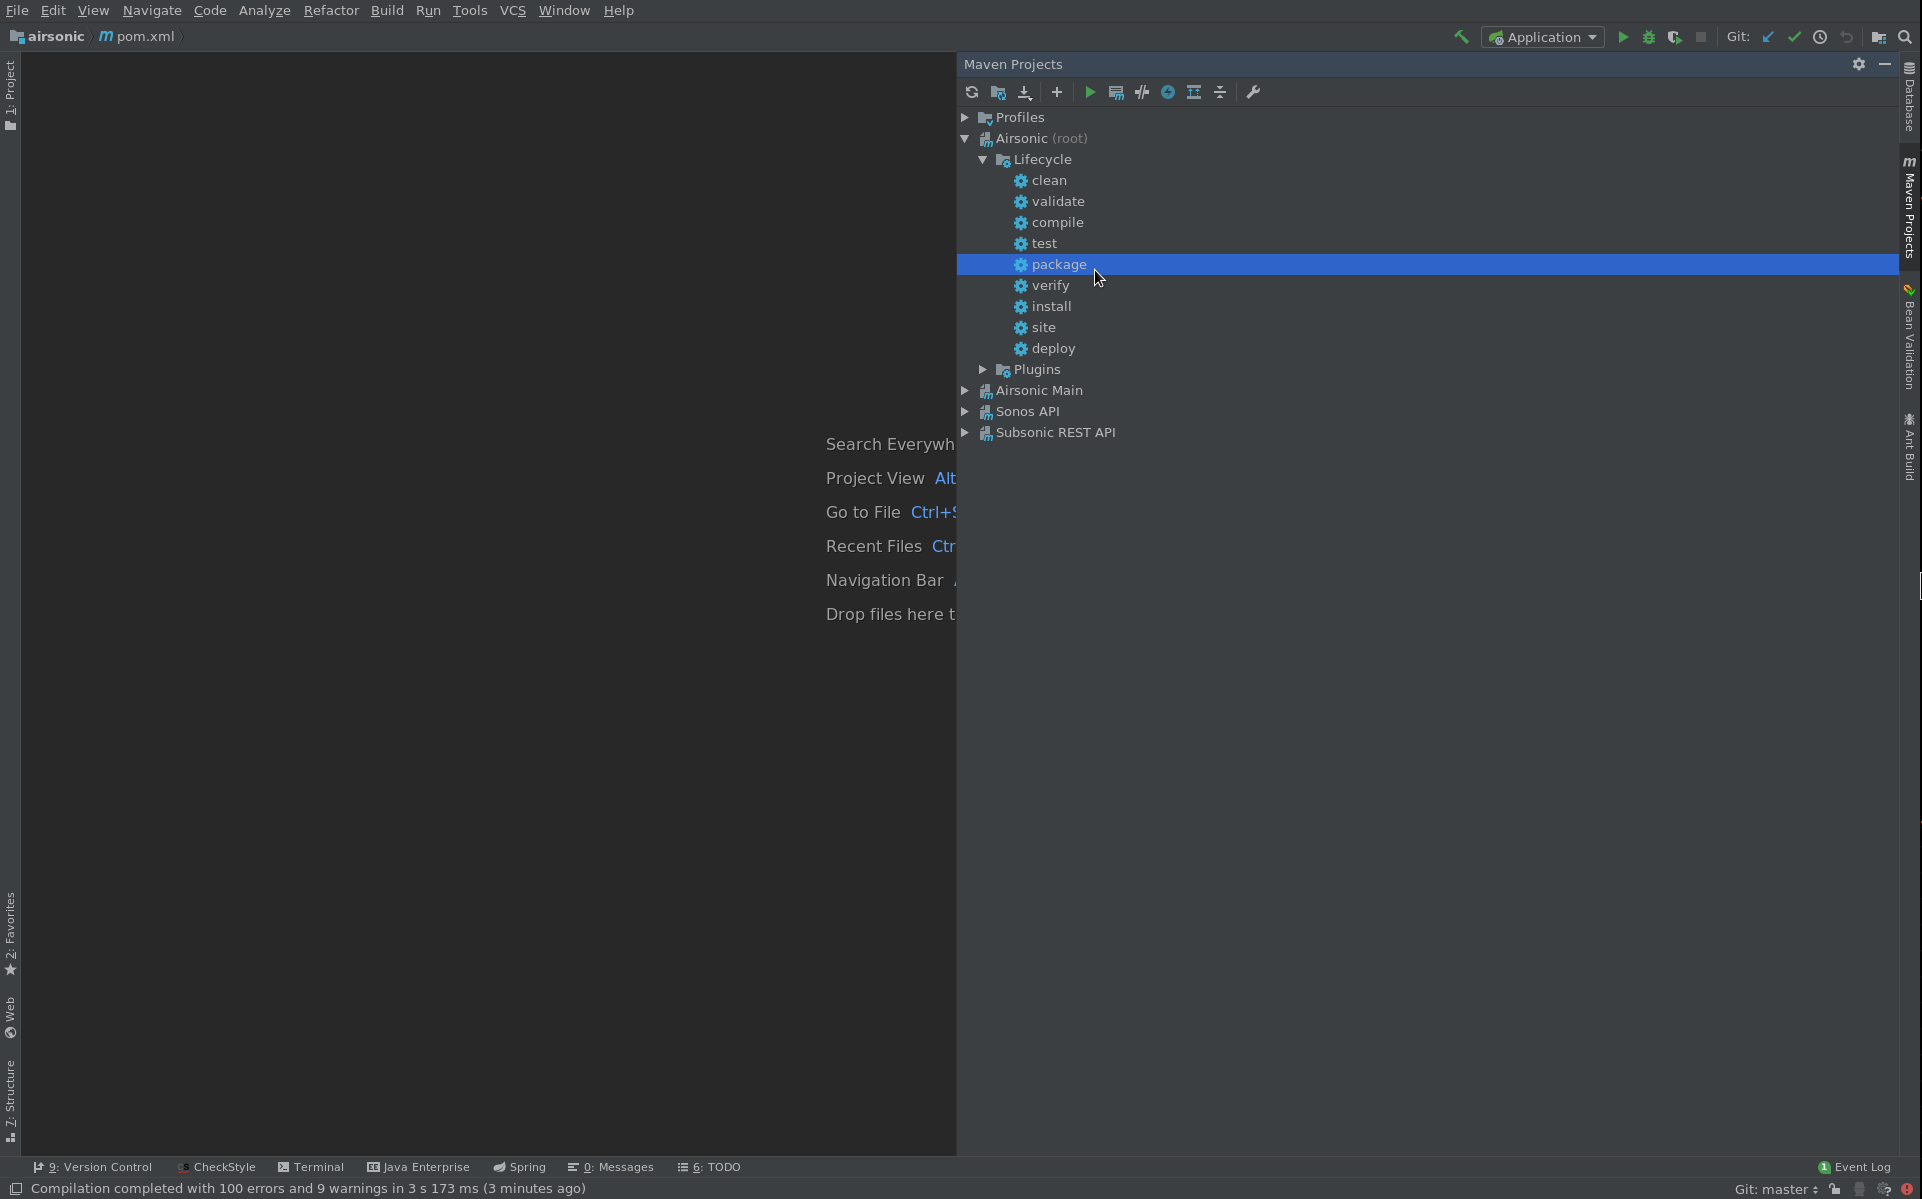 Developing with Intellij - Airsonic